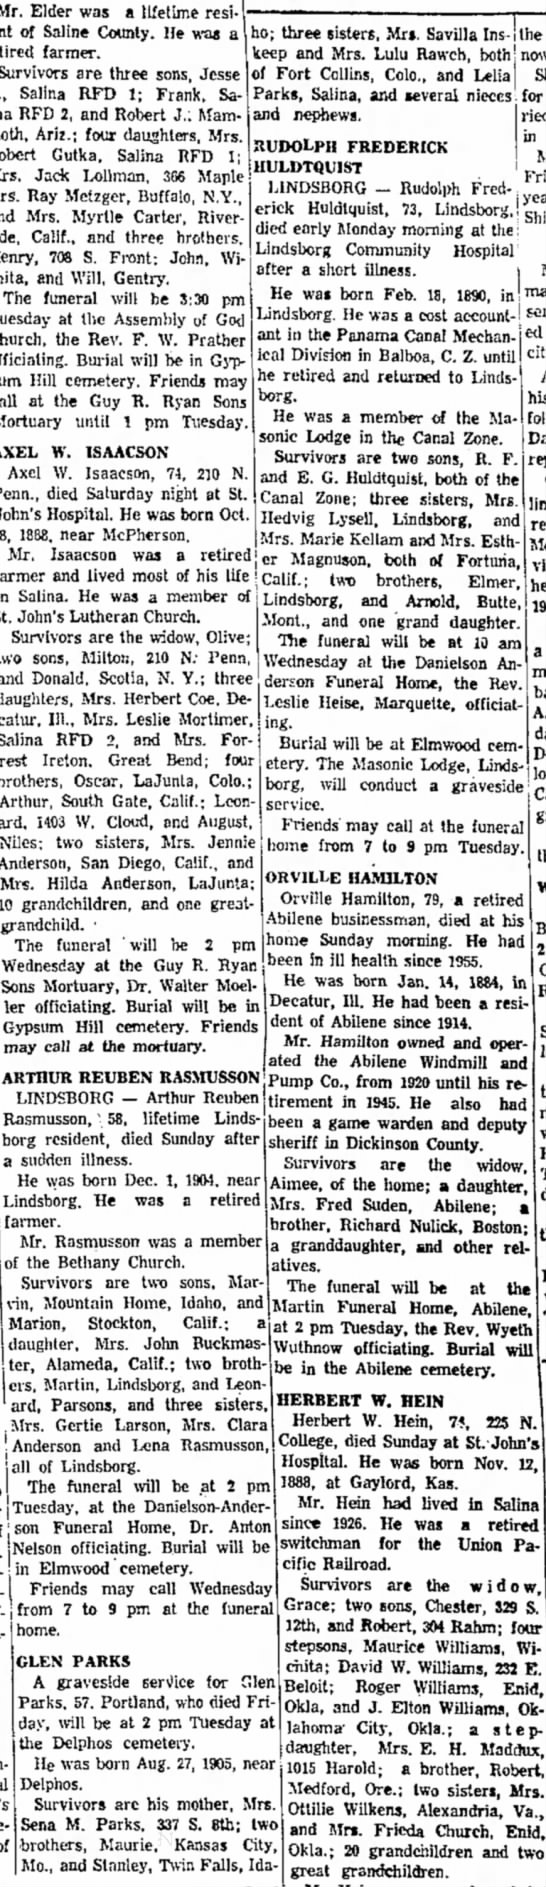 Glen Parks obit